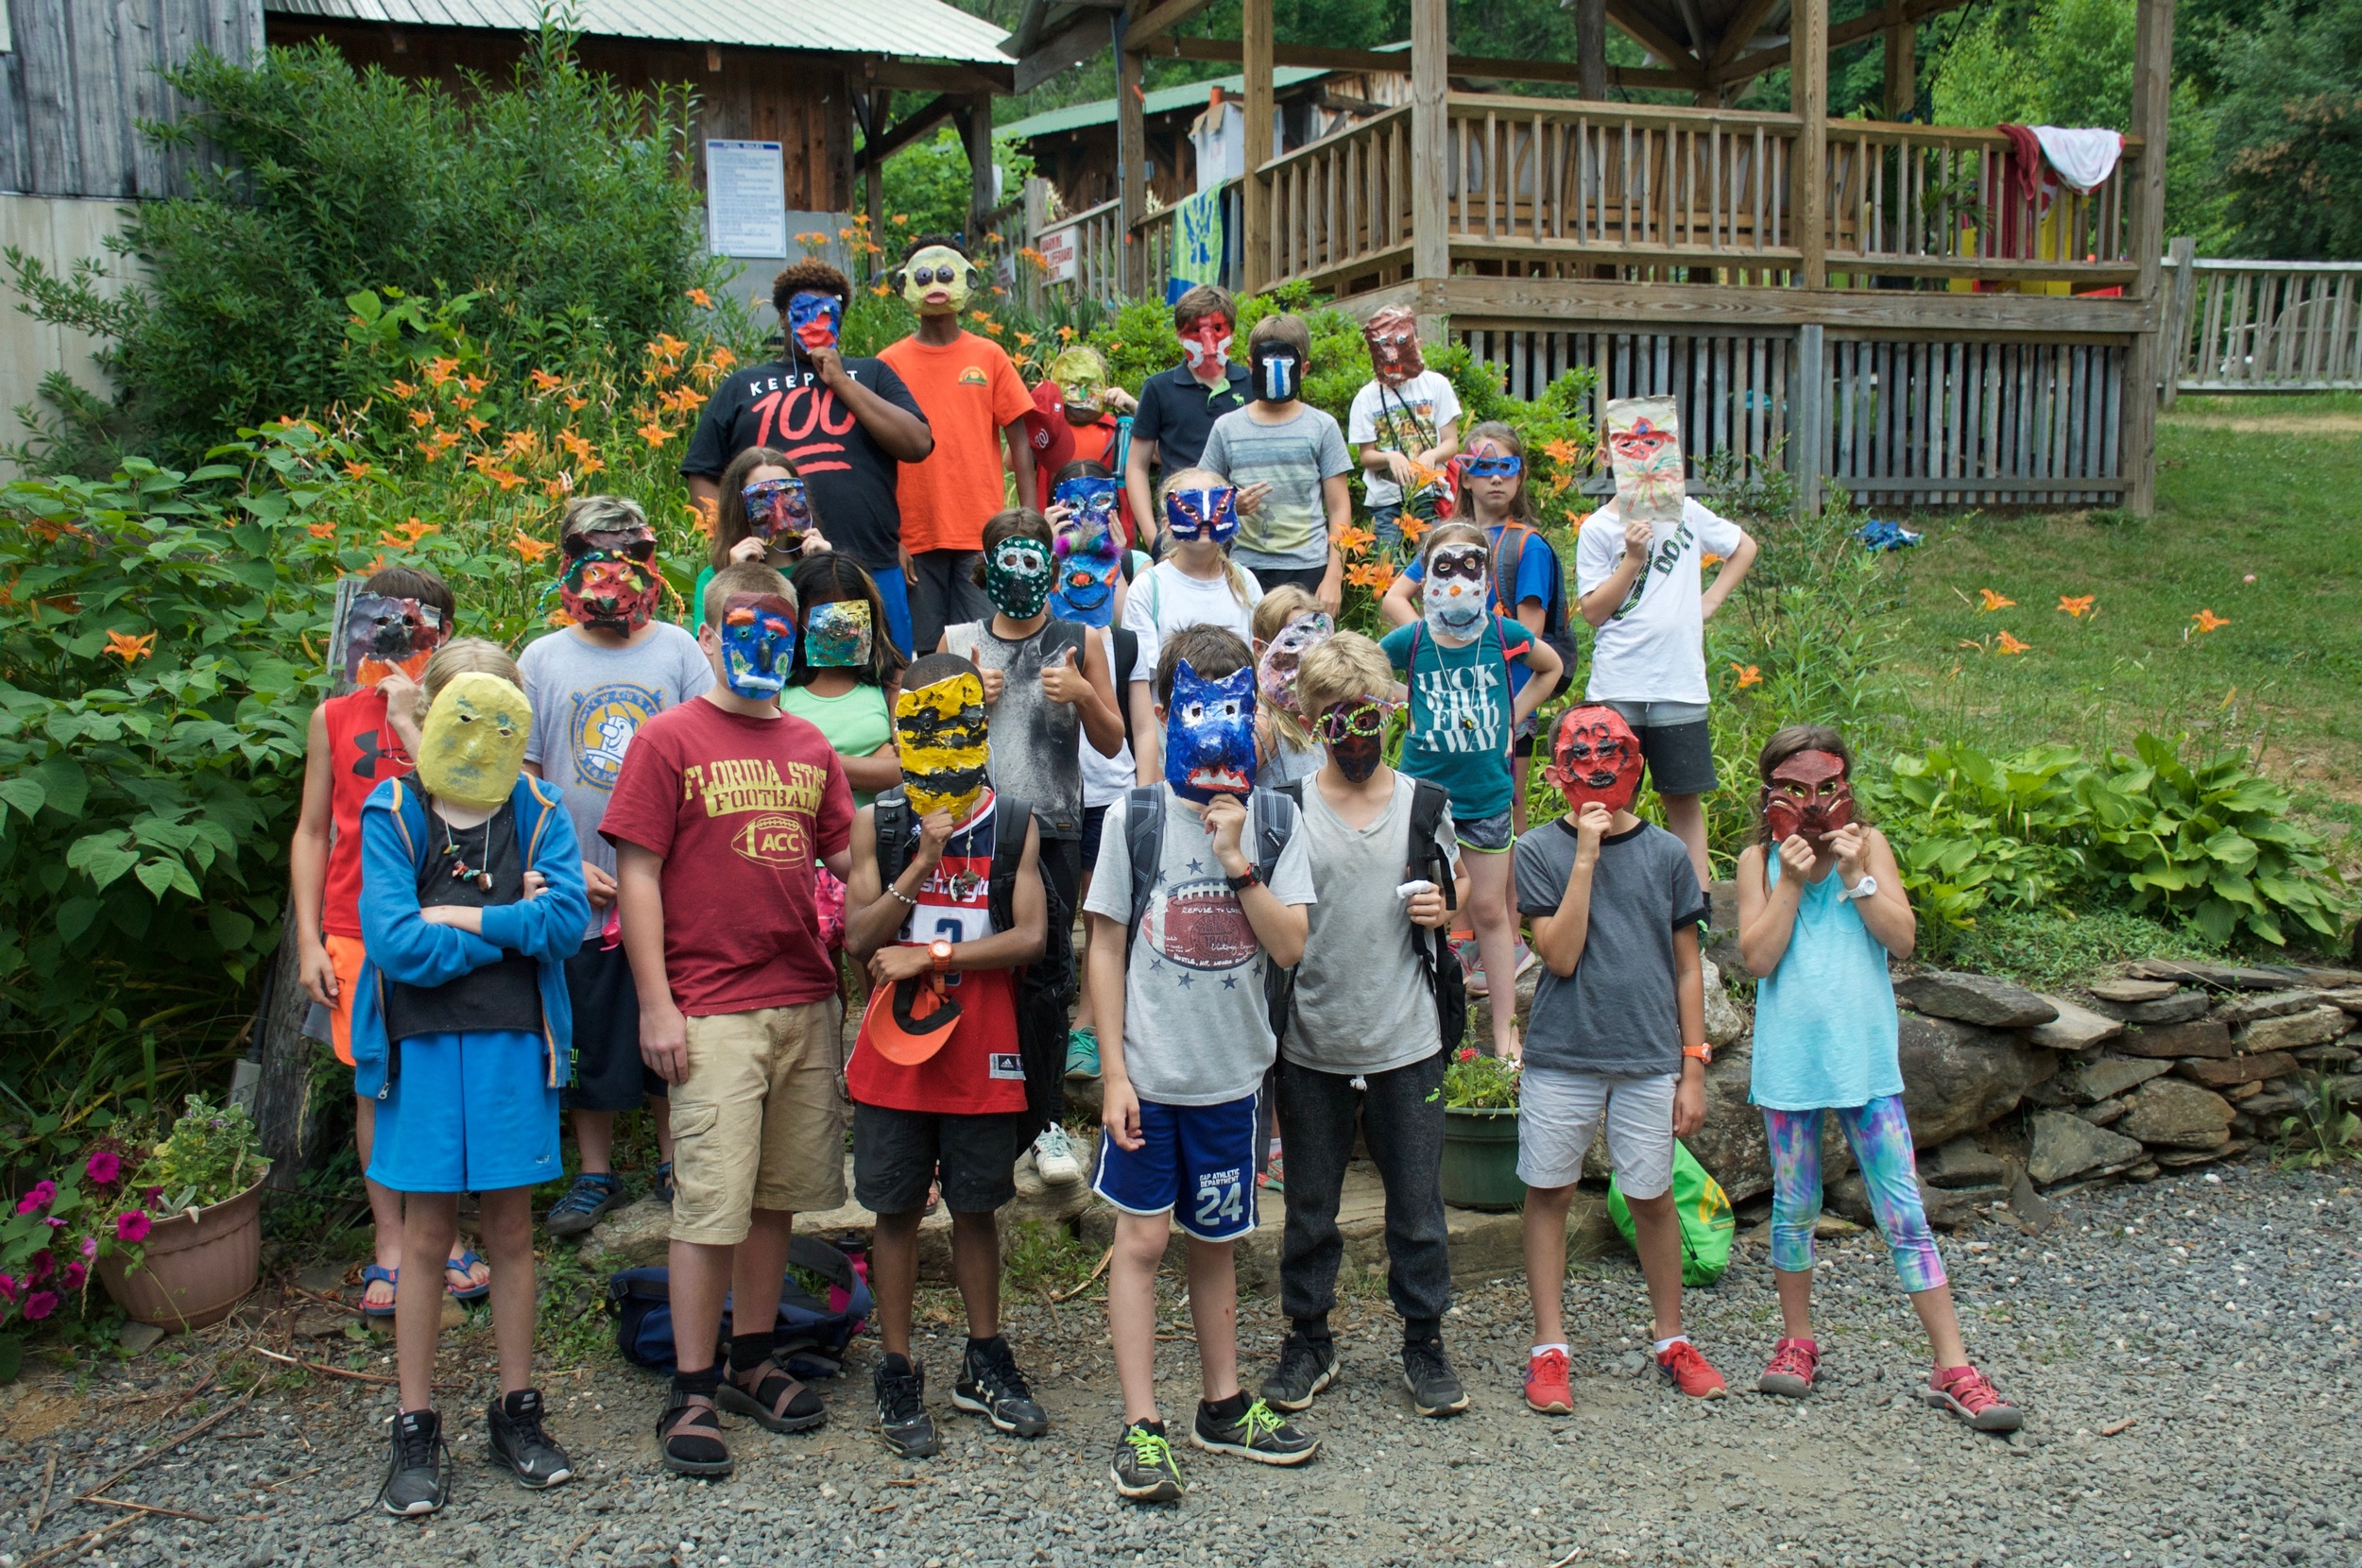 Who are those masked campers?